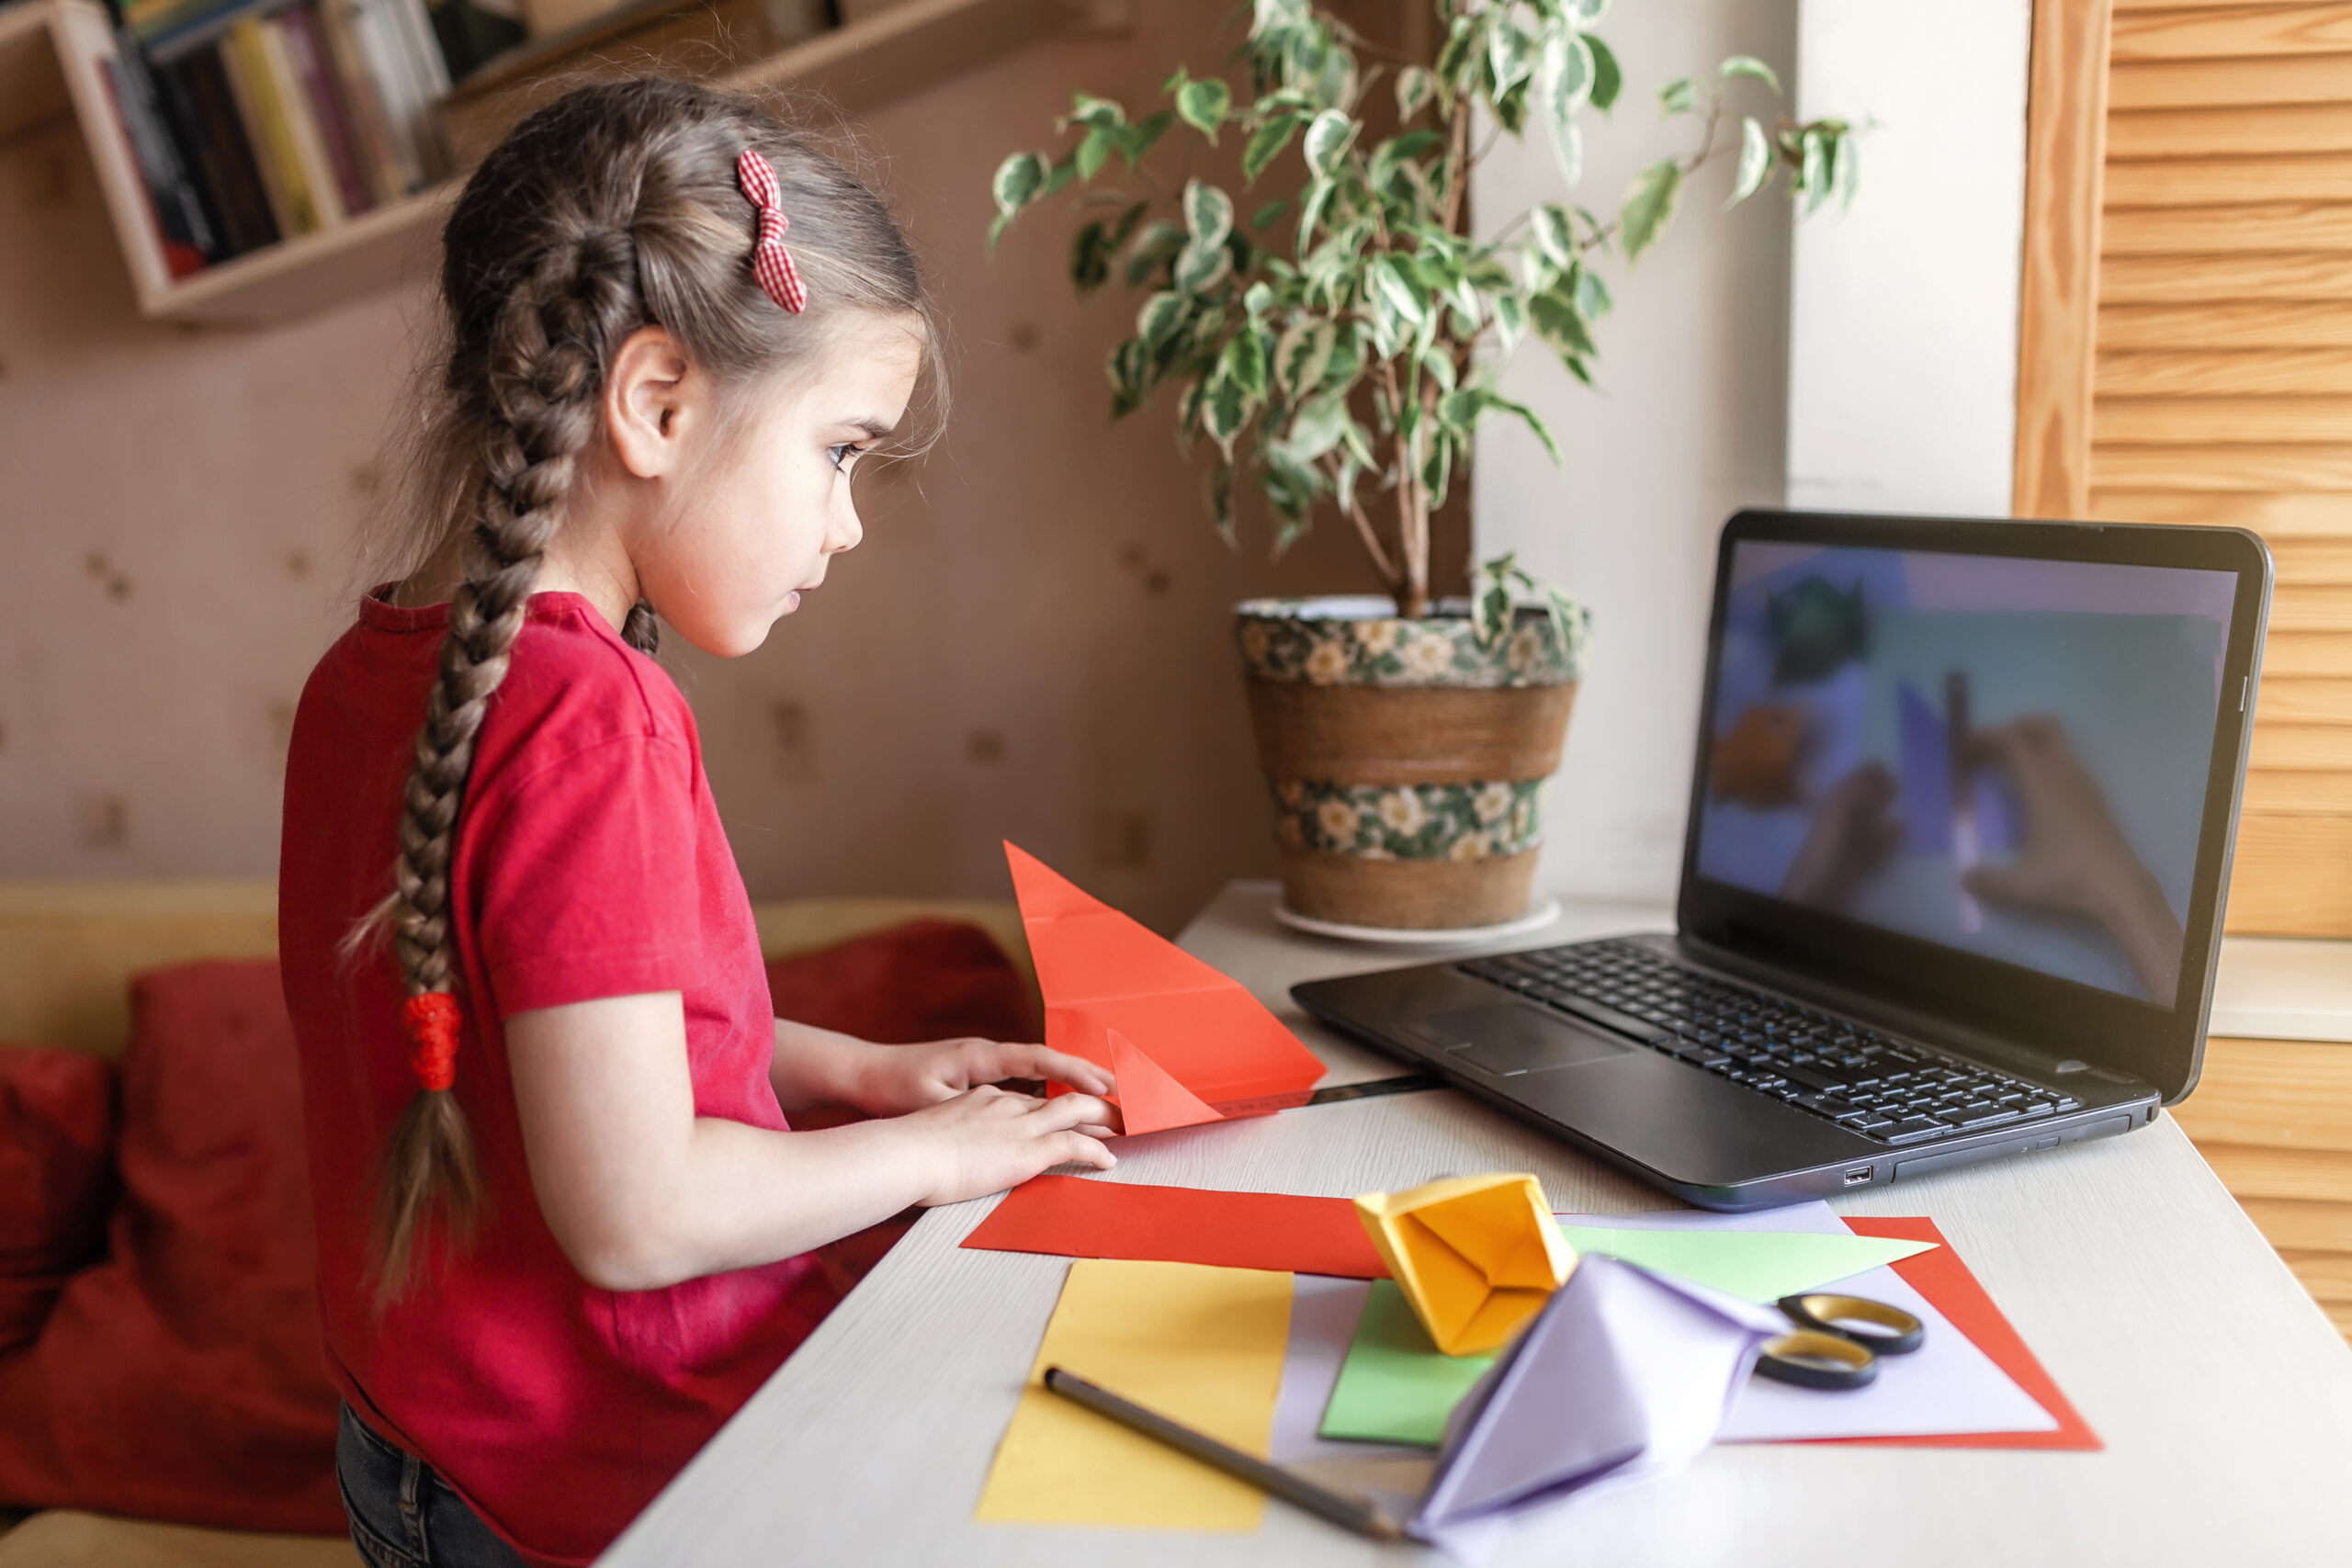 Girl doing origami fish with colour paper looking video on laptop, online workshop and distant education